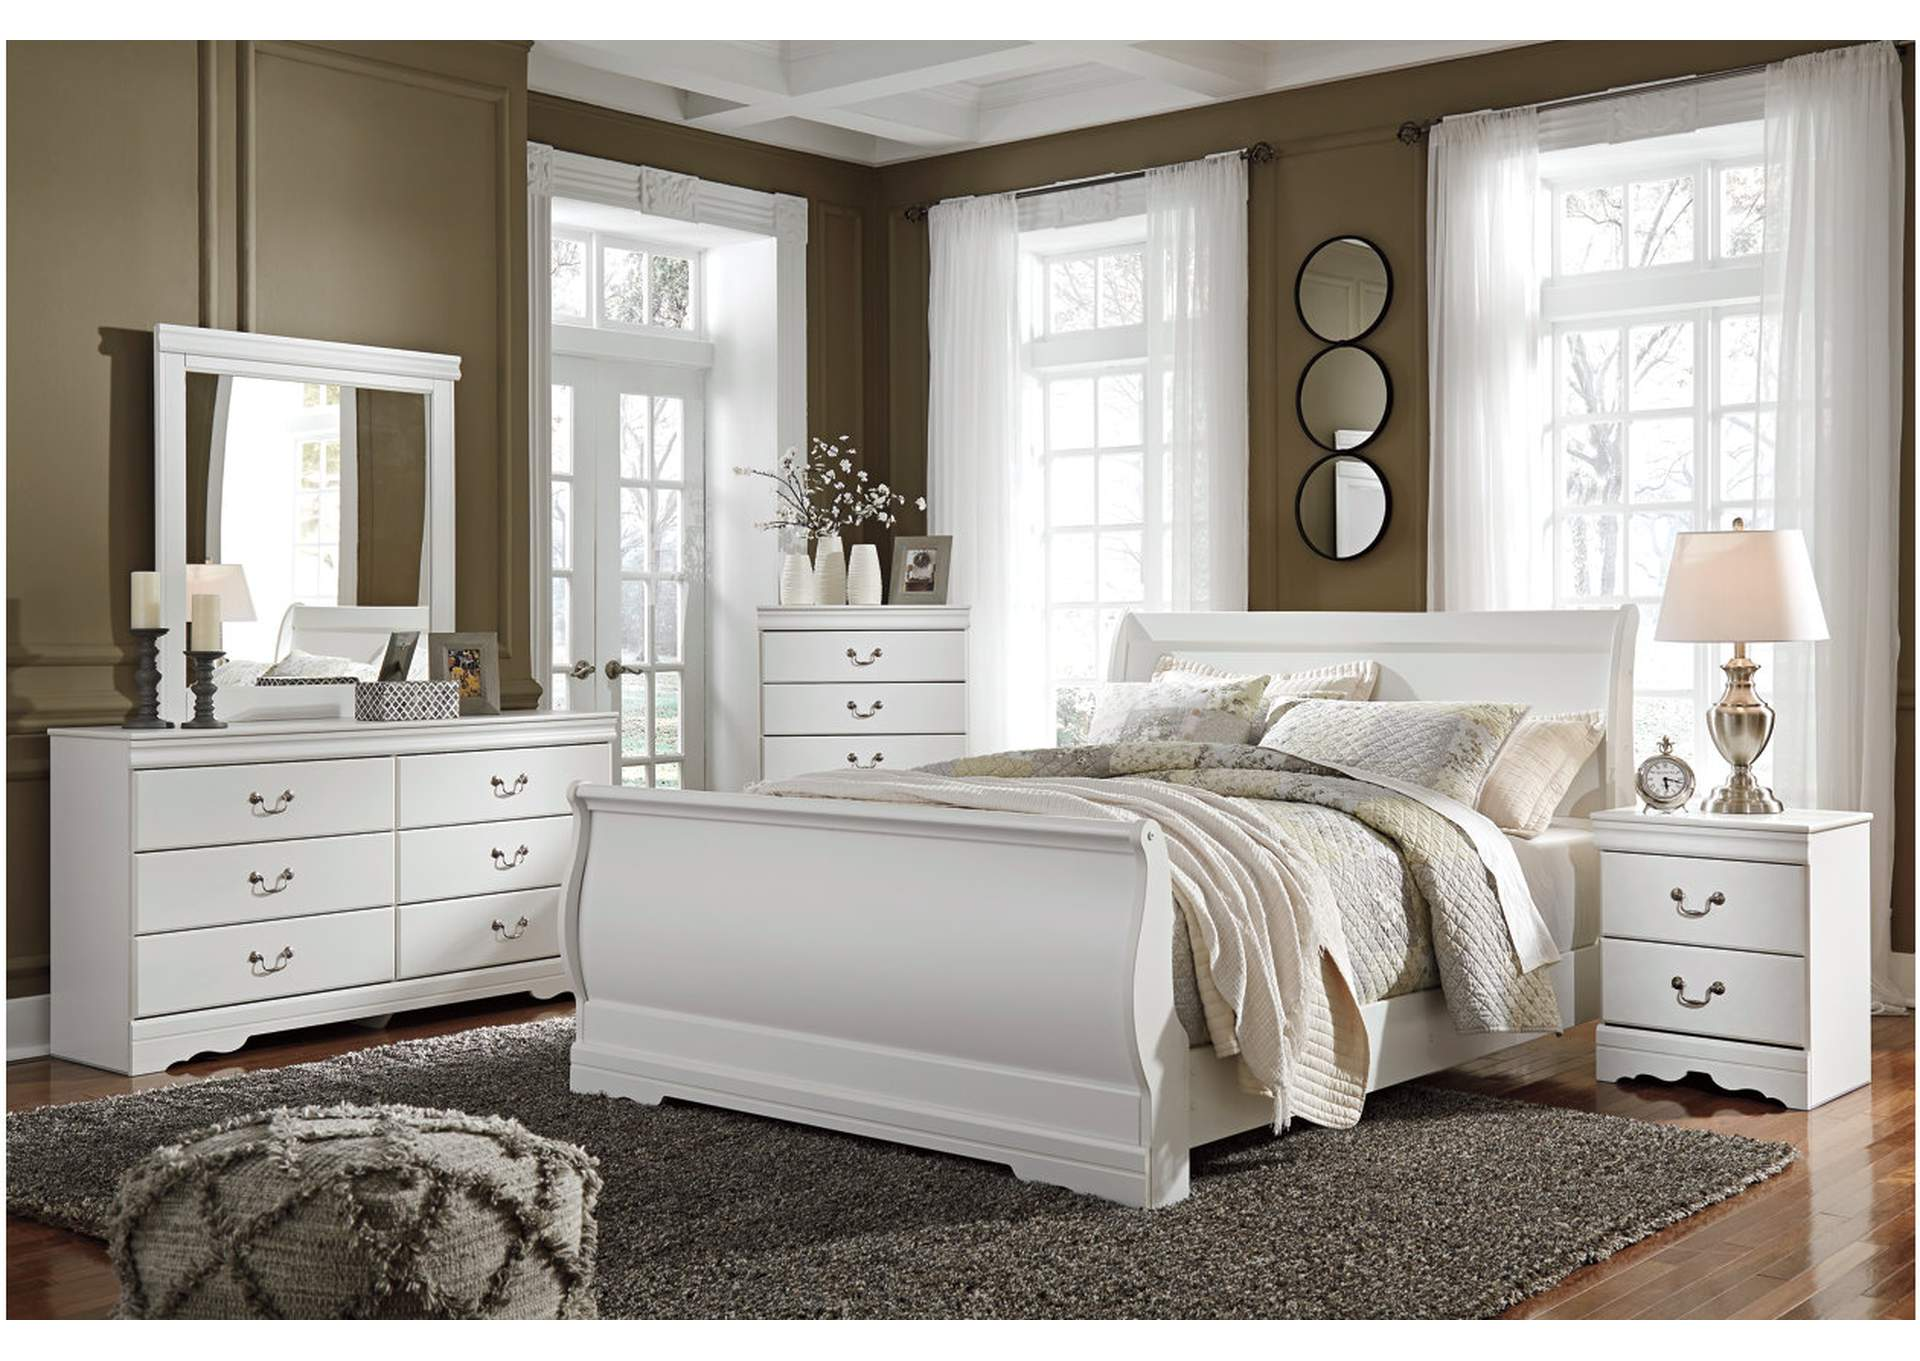 Anarasia White Queen Sleigh Bed w/Dresser, Mirror & Nightstand,Signature Design By Ashley